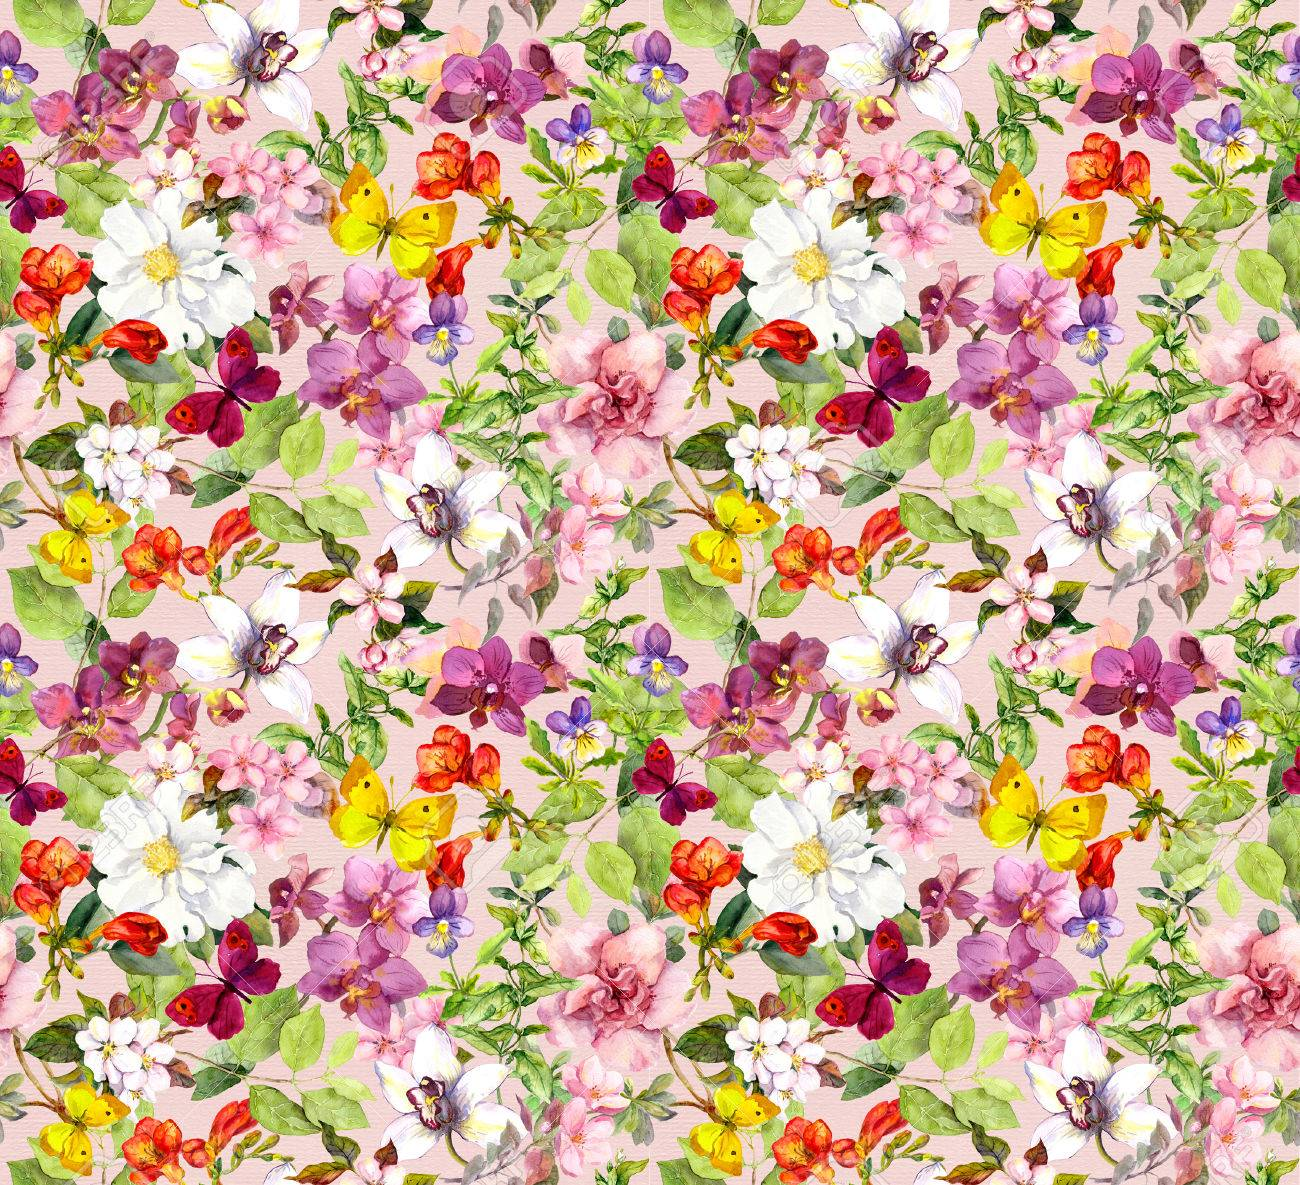 Bright Flowers And Butterflies Colorful Garden Floral Wallpaper Watercolour Stock Photo Picture And Royalty Free Image Image 45666896